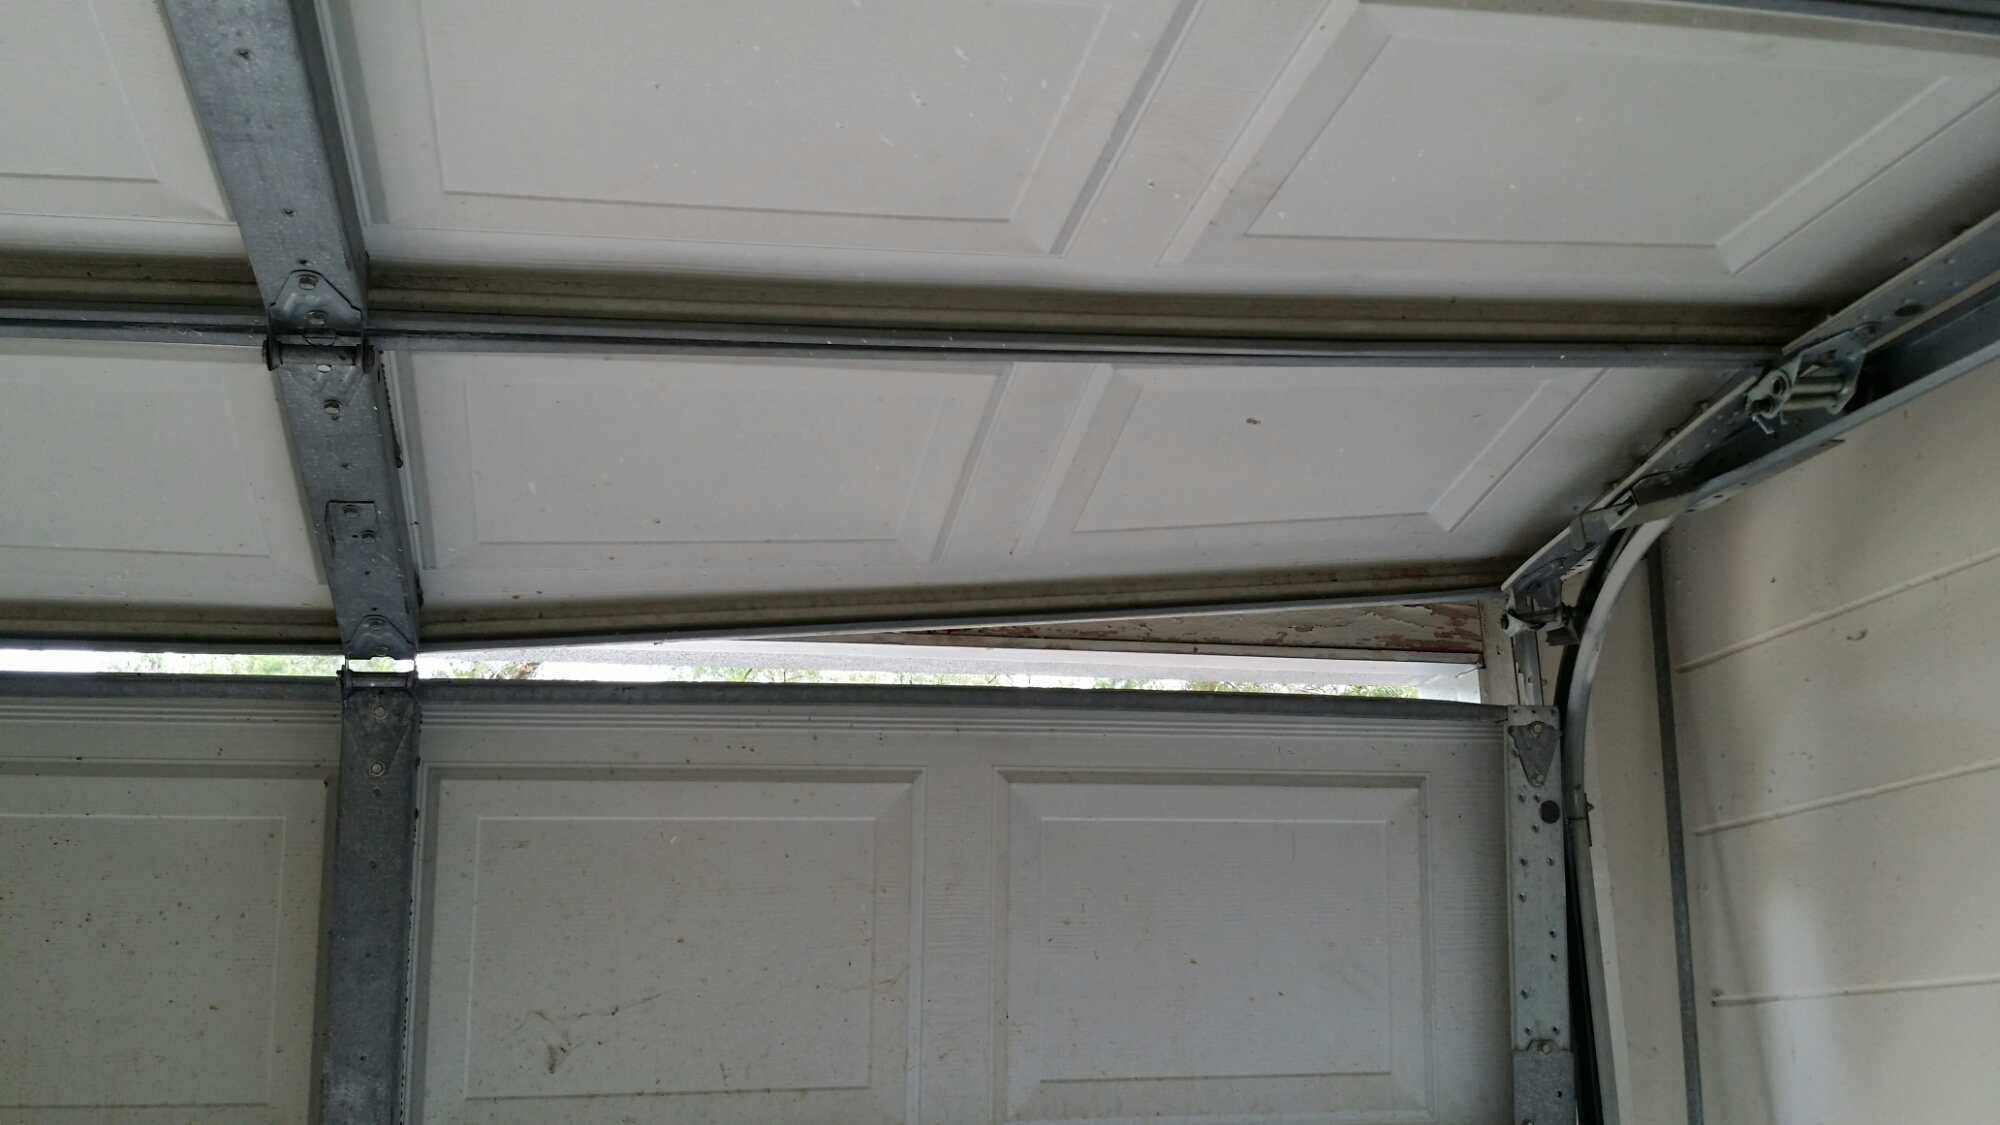 garage door extension springsGarage Door Torsion Springs Vs Garage Door Extension Springs